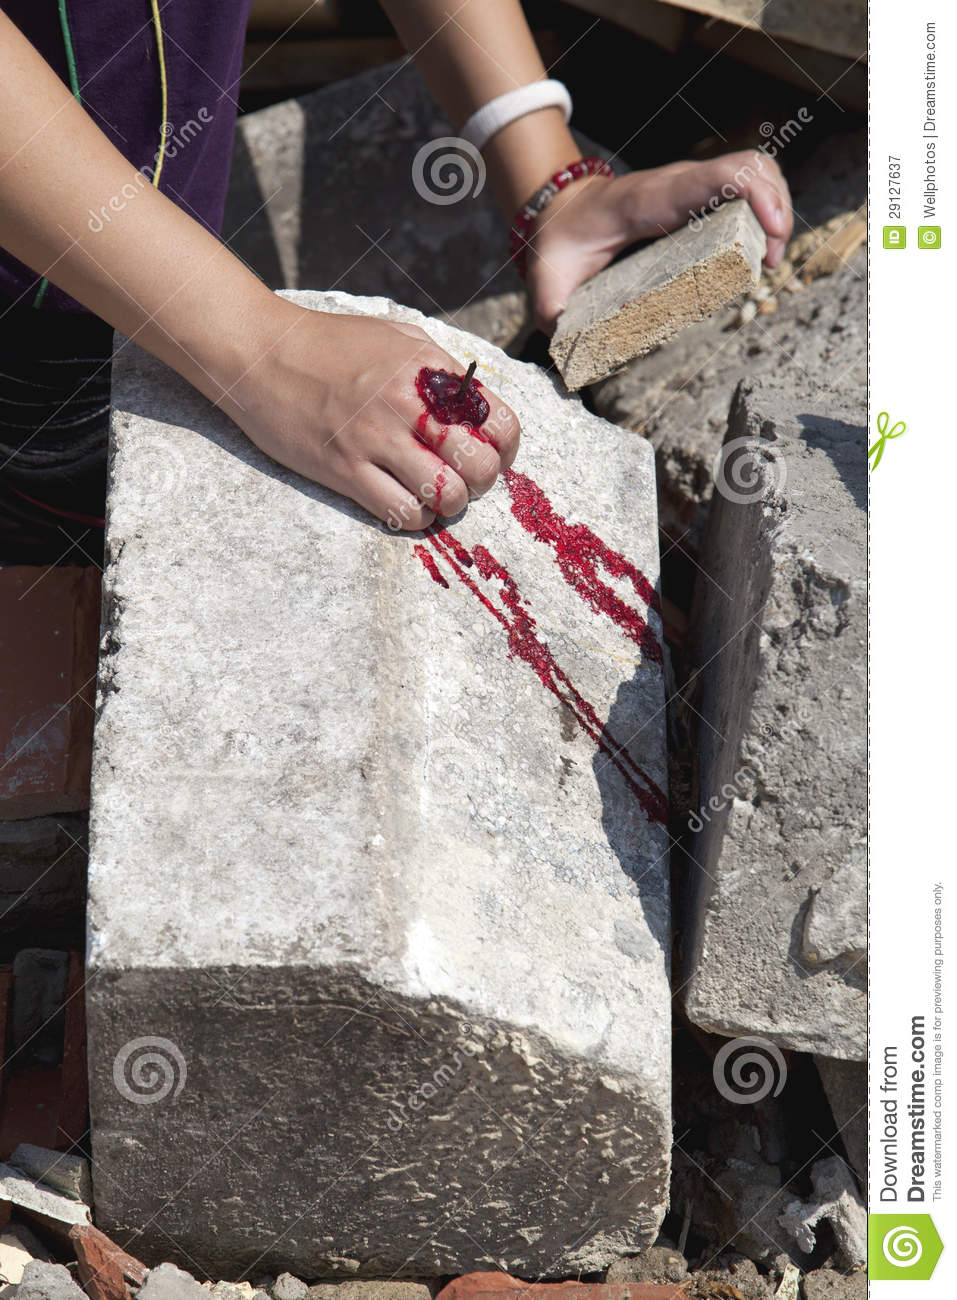 Serious Injury On A Girls Hand Royalty Free Stock Photography Image 29127637